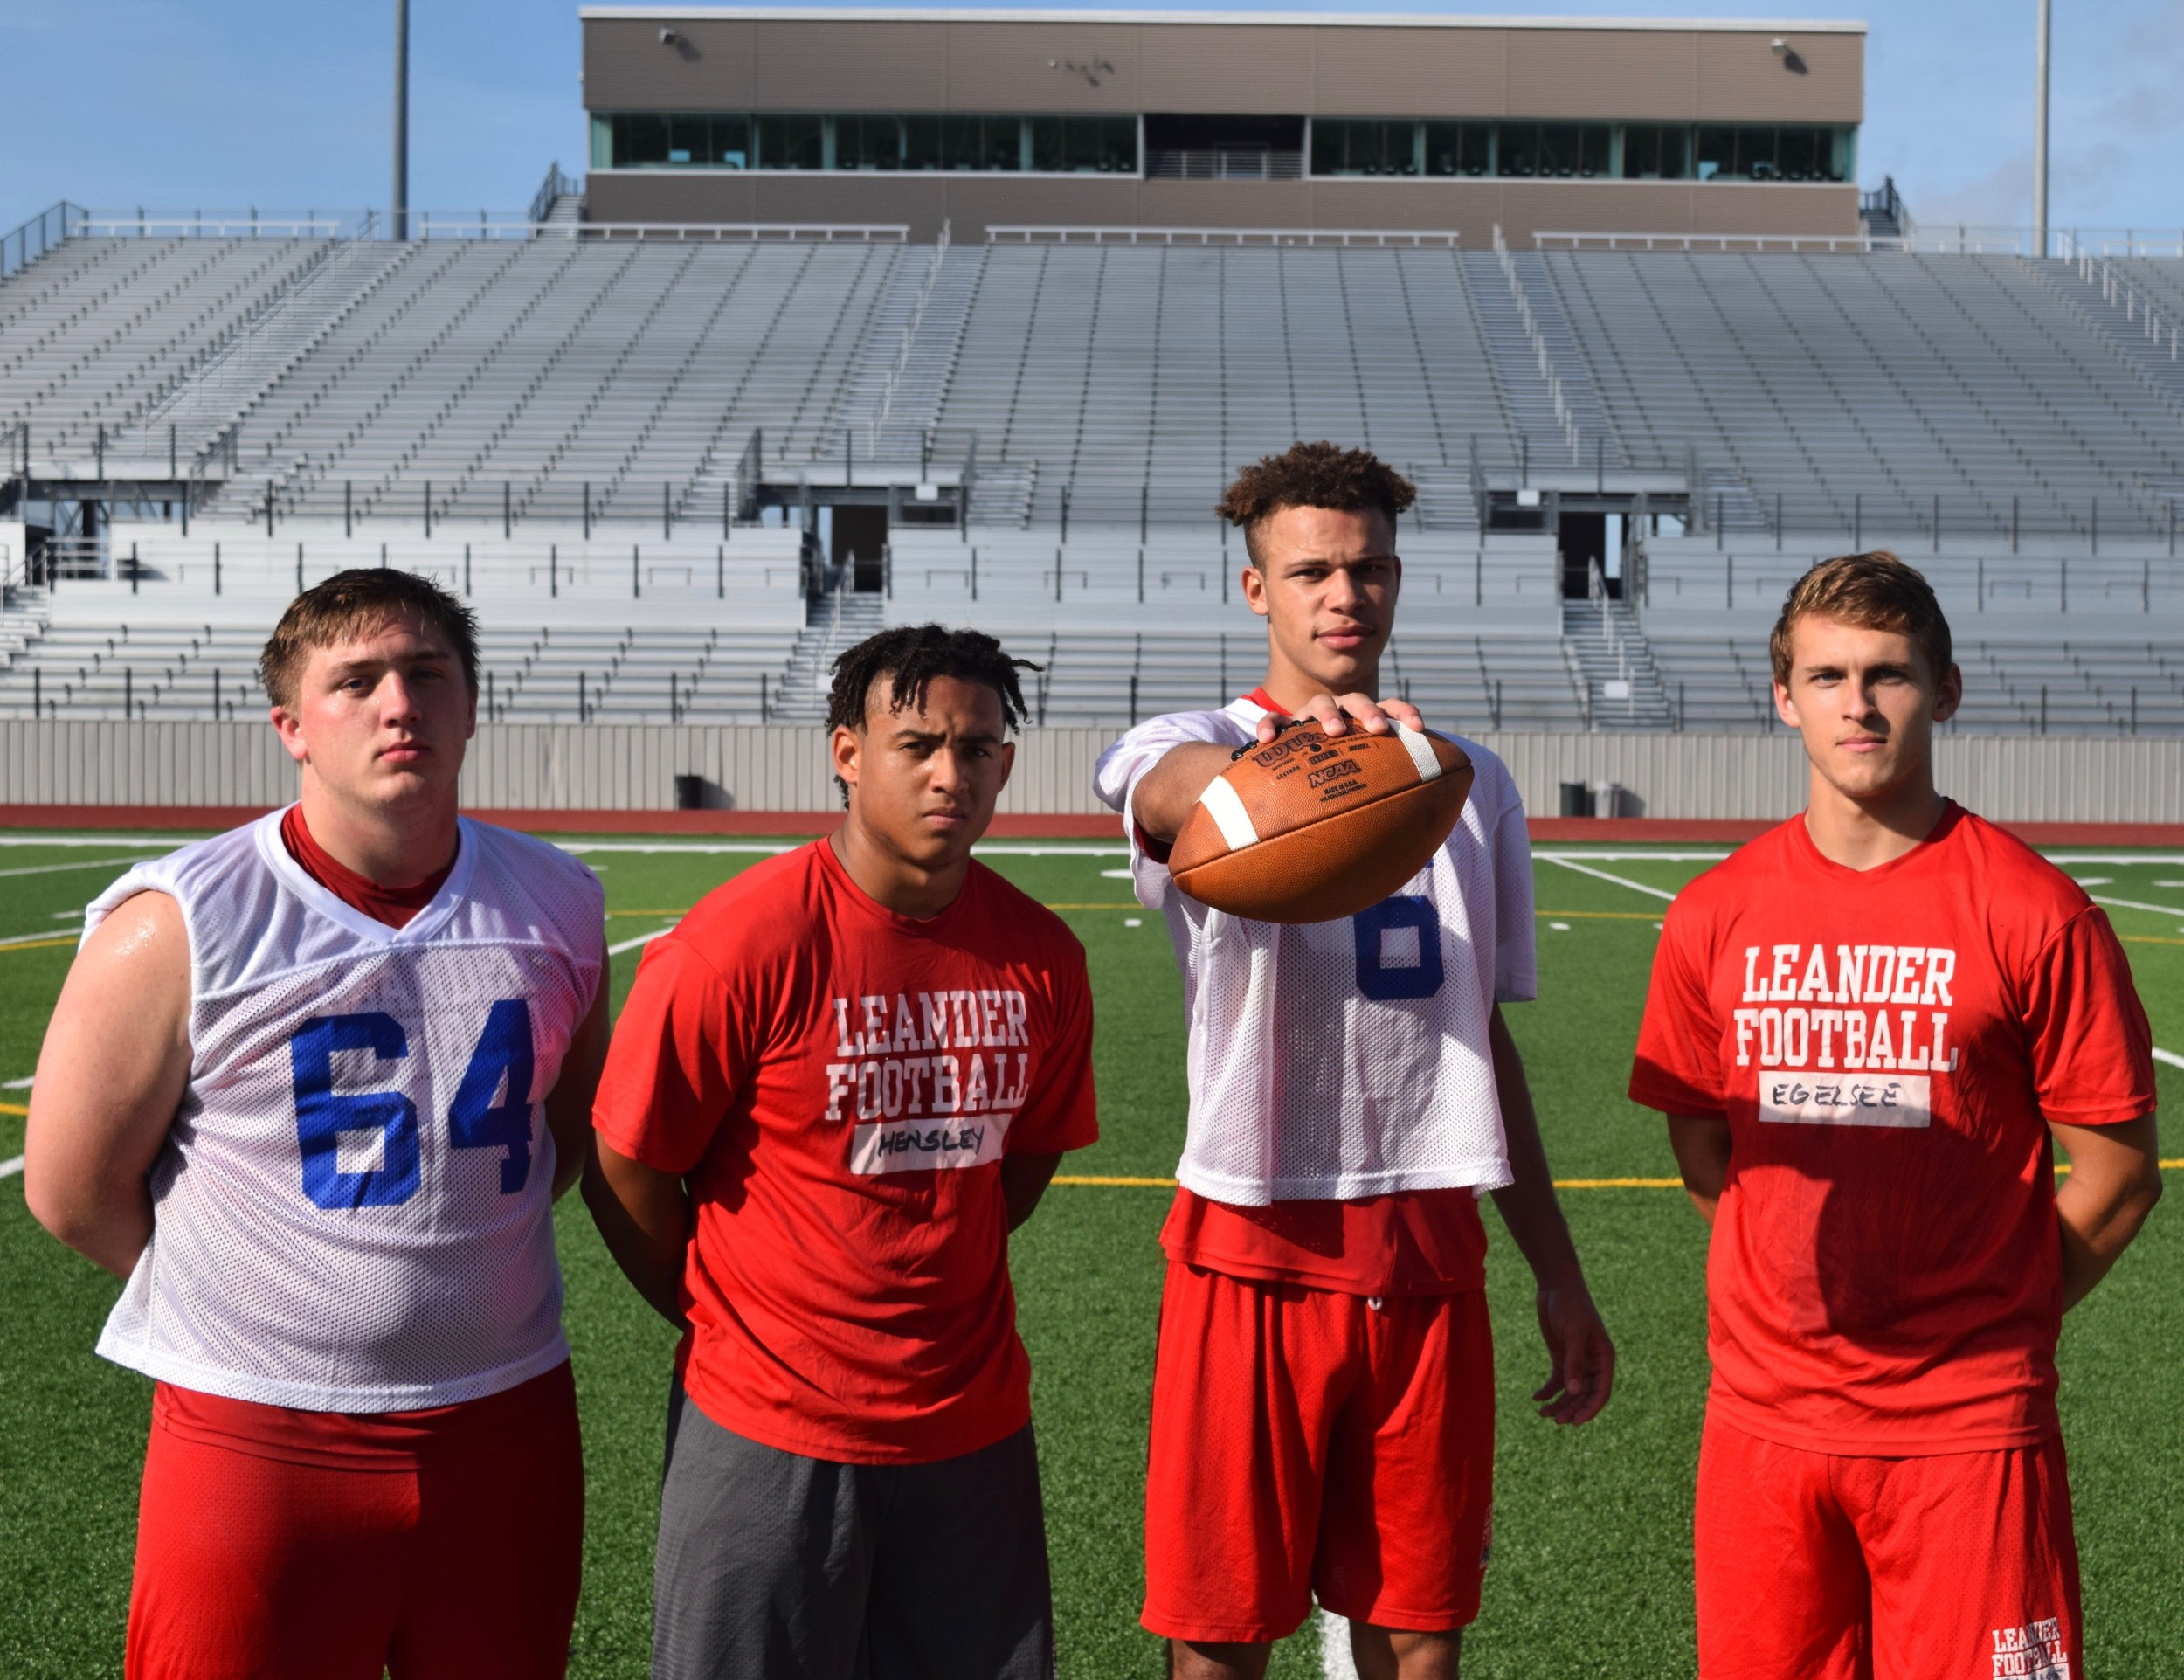 (From left to right) Jeremy Kracy, Alex Hensley, Dalton Flowers, and Jake Egelsee are just four of the two-way players that hope to take Leander back to the playoffs for the first time in three seasons.